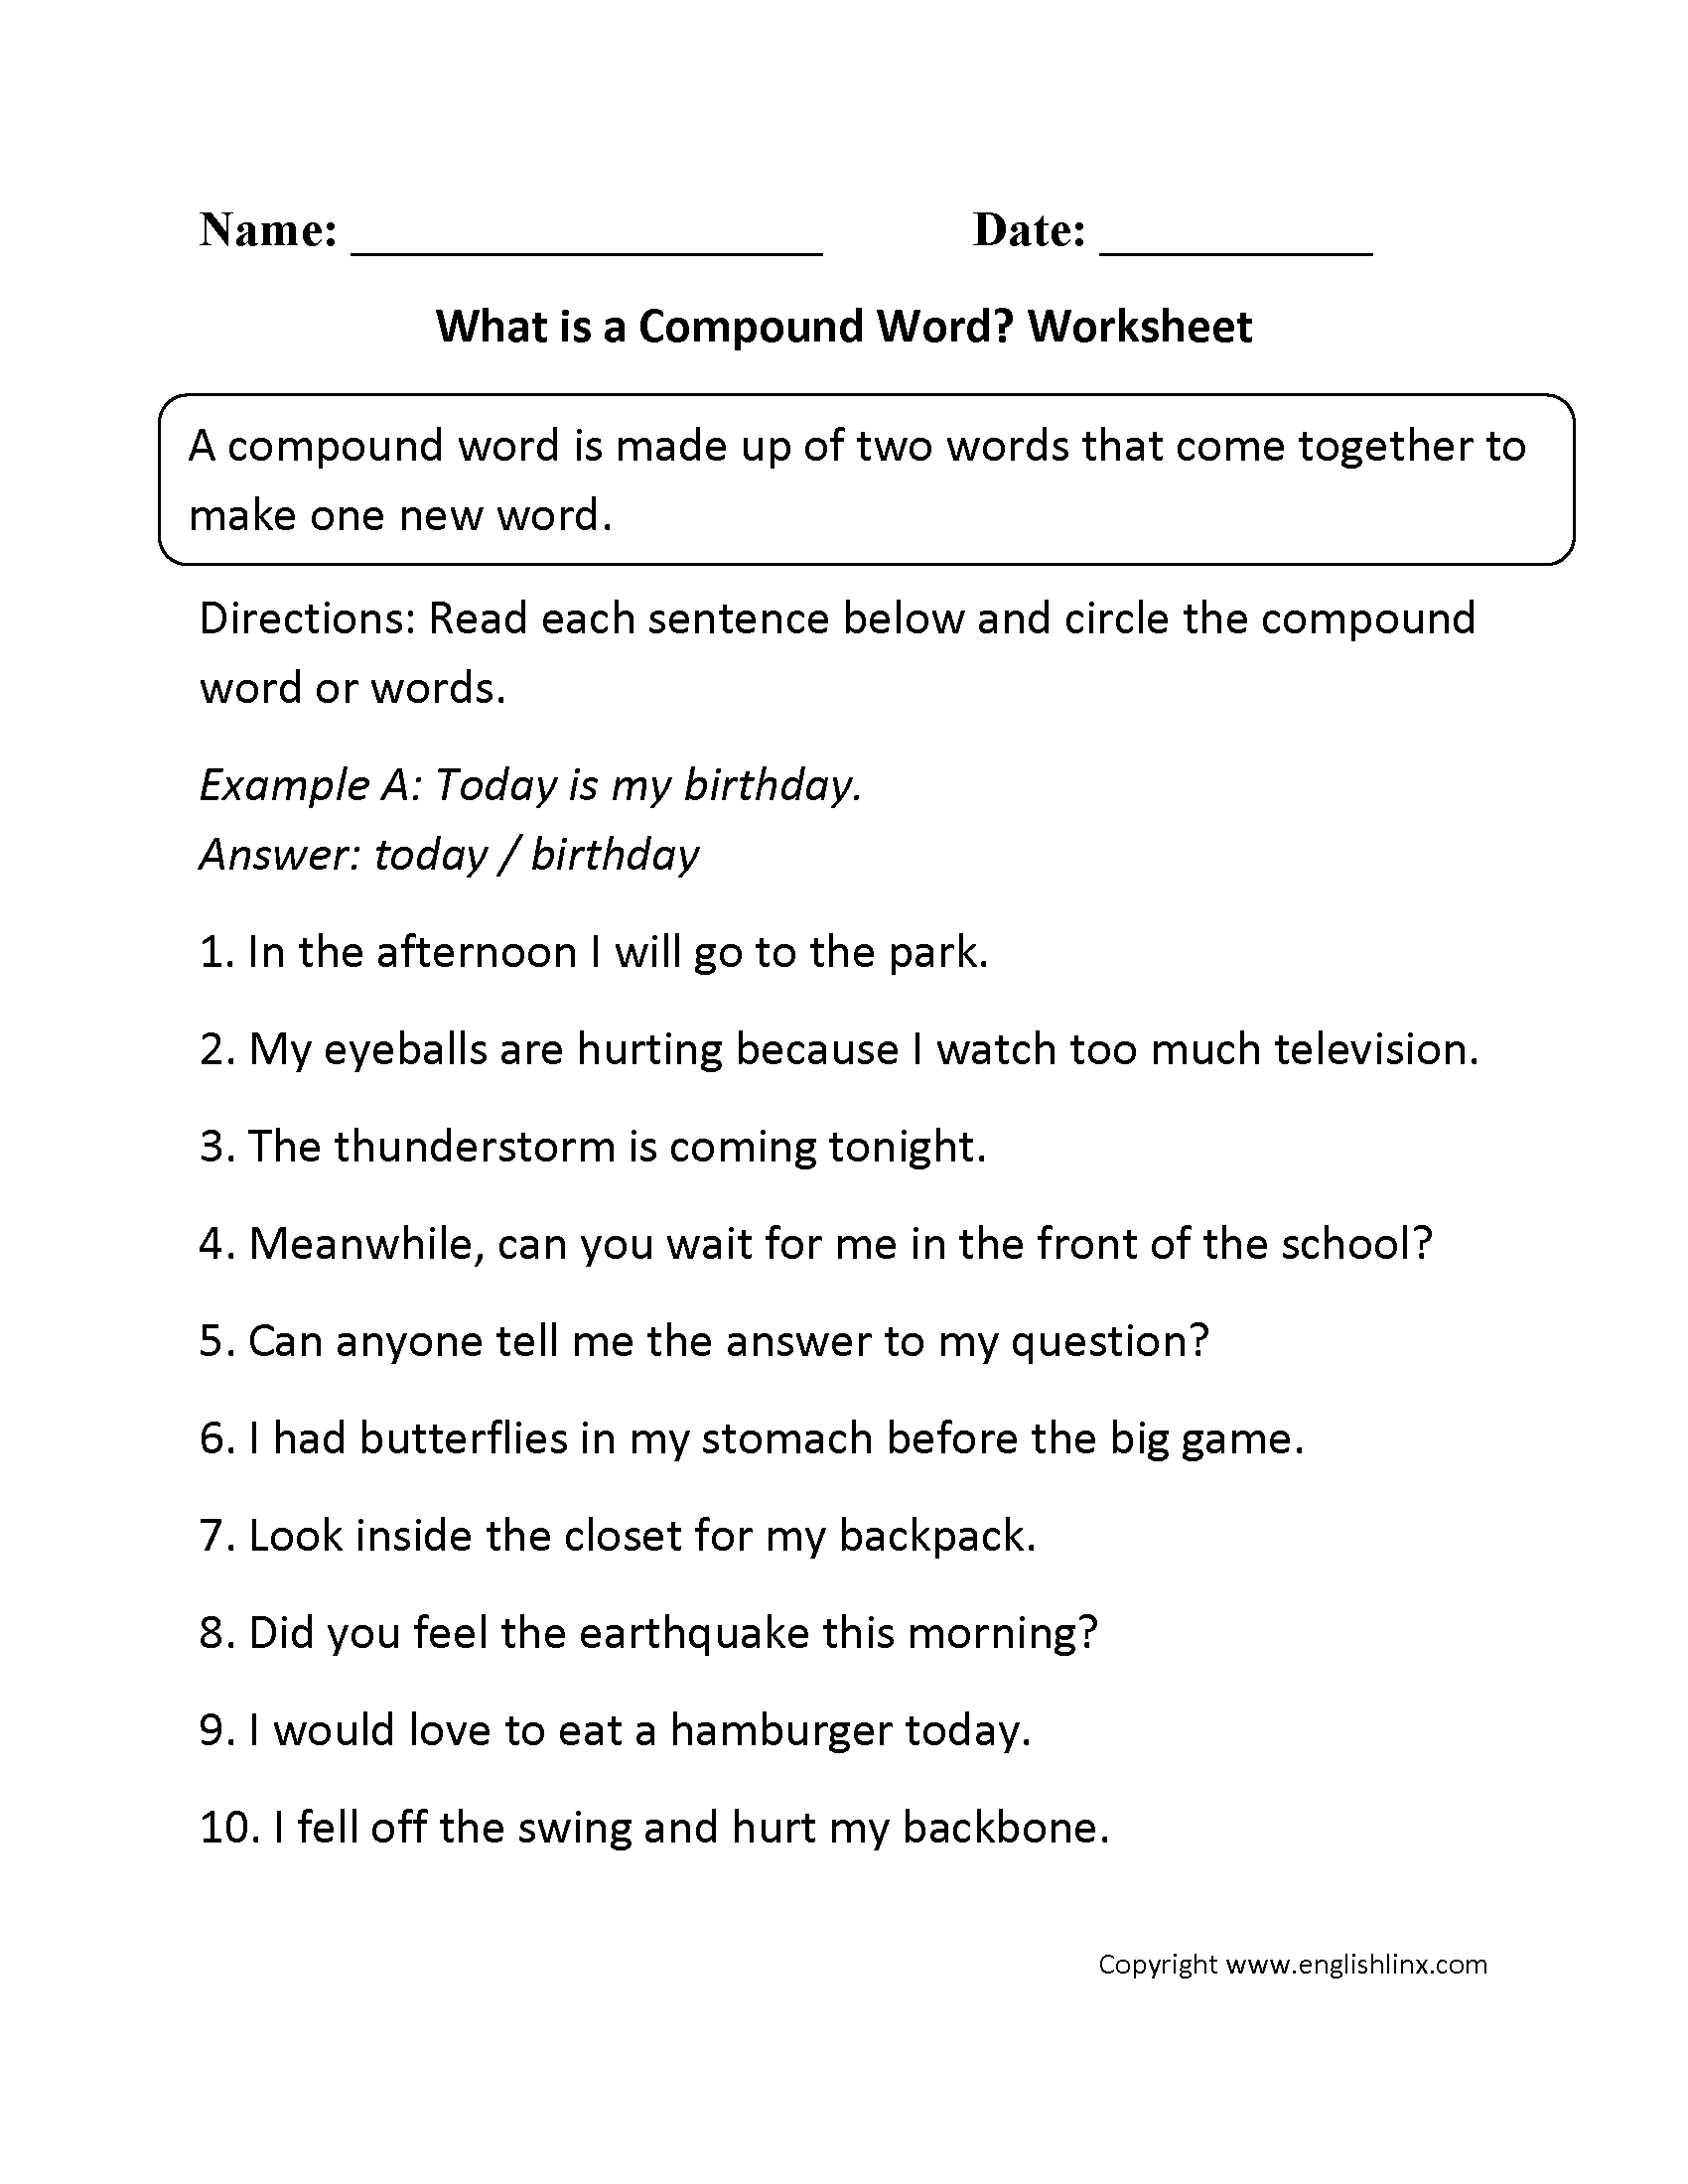 Worksheets Compound Interest Worksheet grammar mechanics worksheets compound words what is a word worksheets